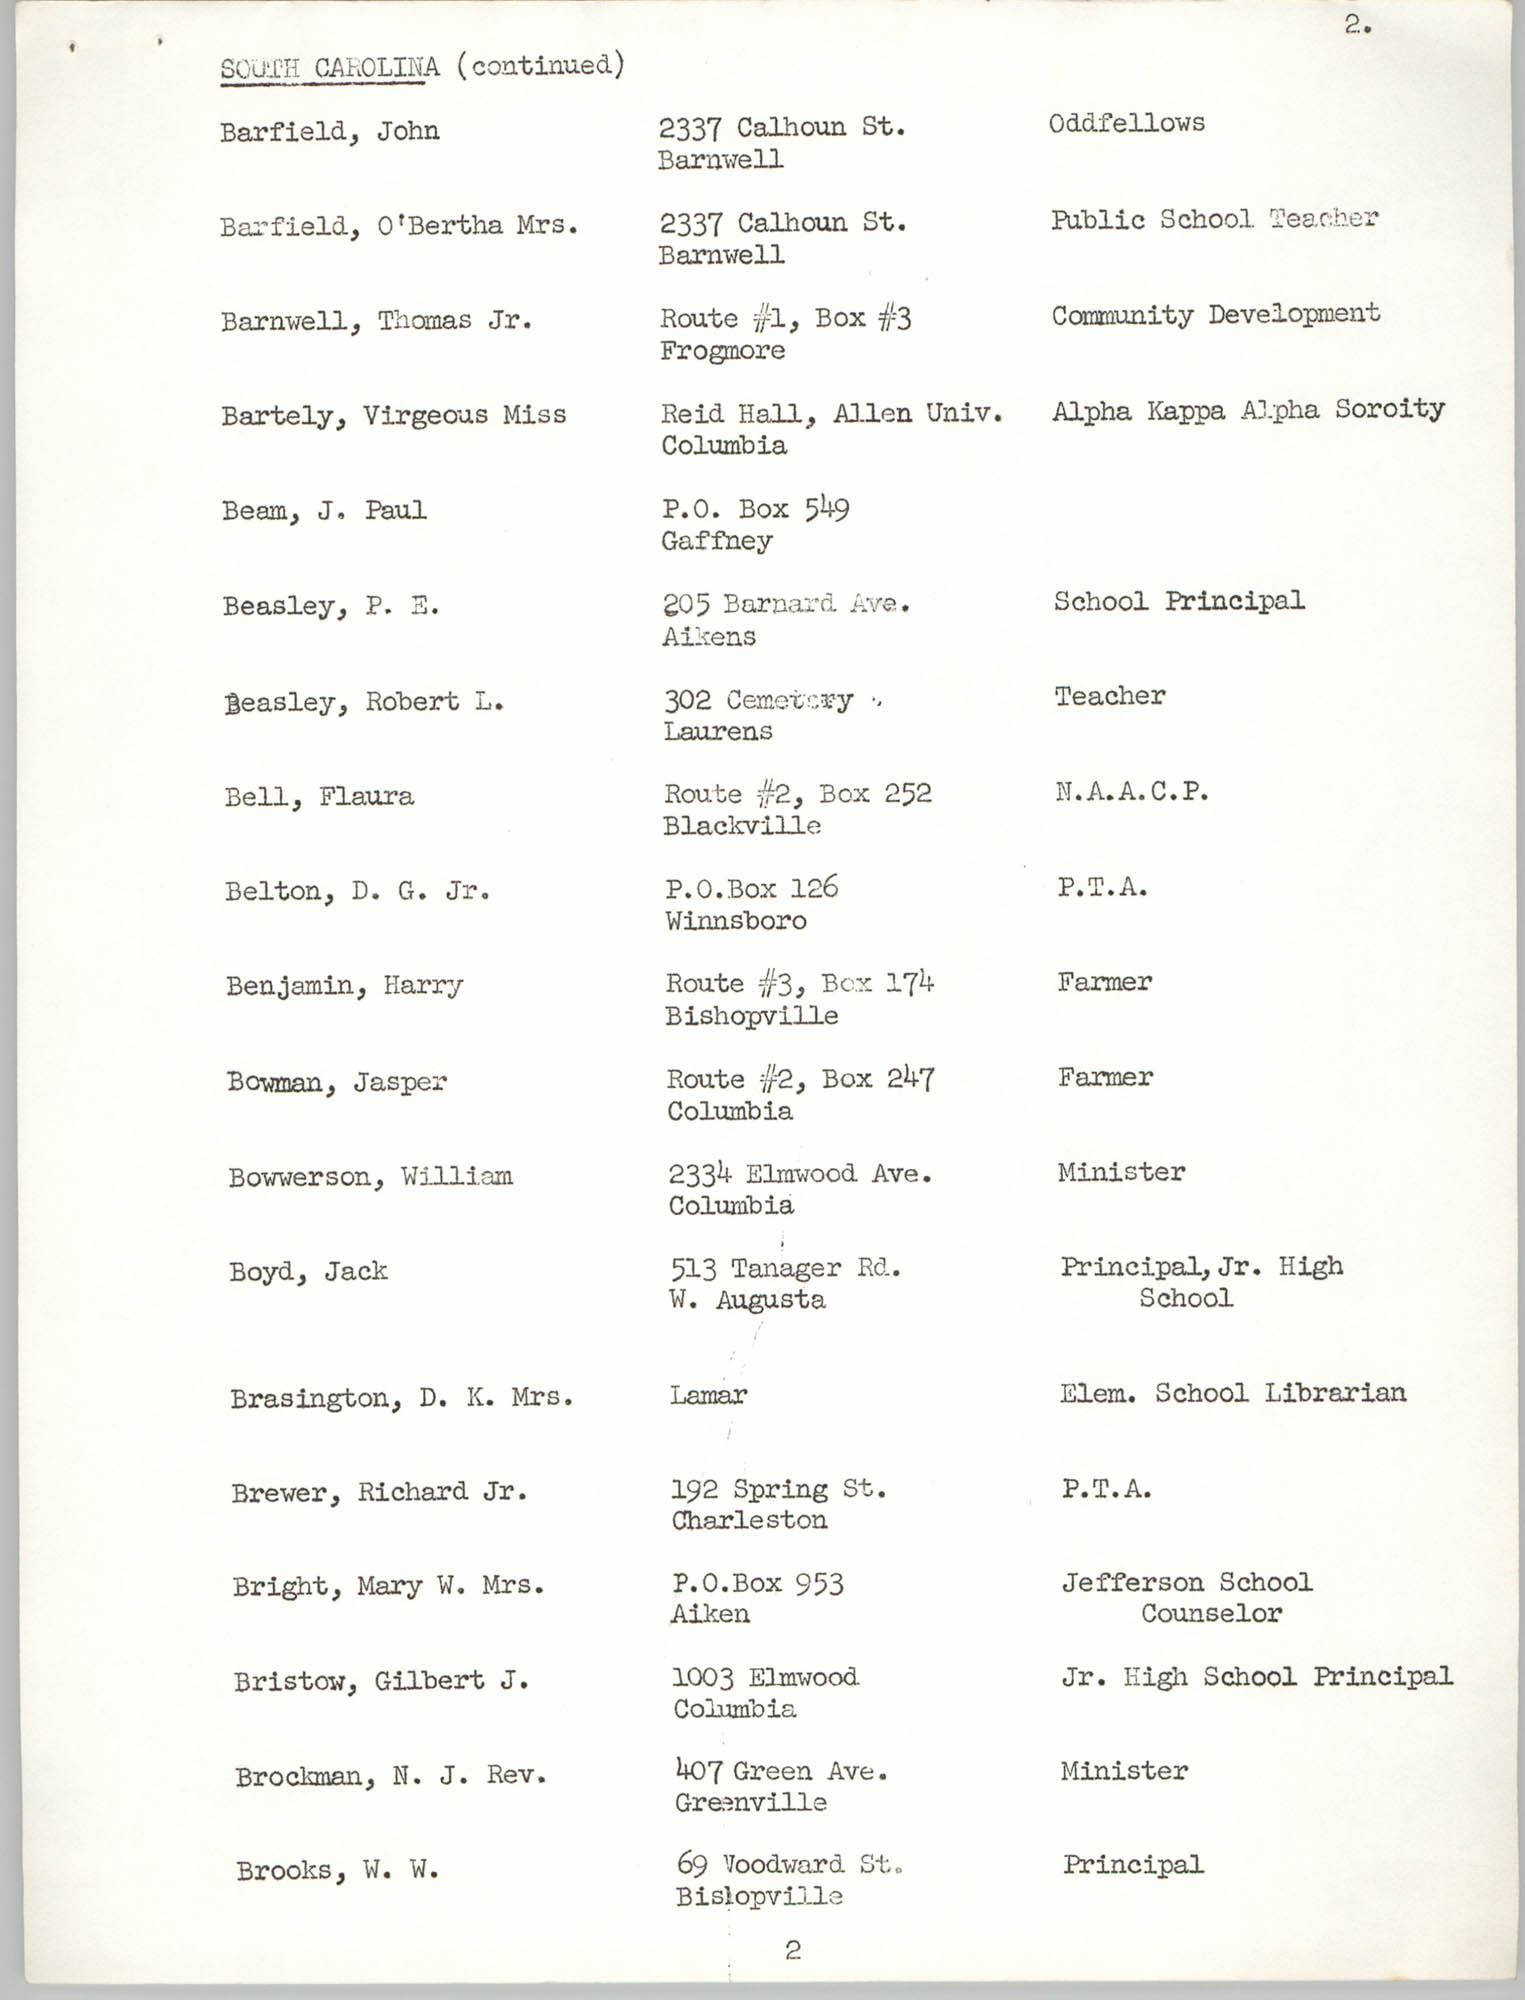 Registration, U.S. Commission on Civil Rights, Statewide Education Desegregation Conference, Page 2